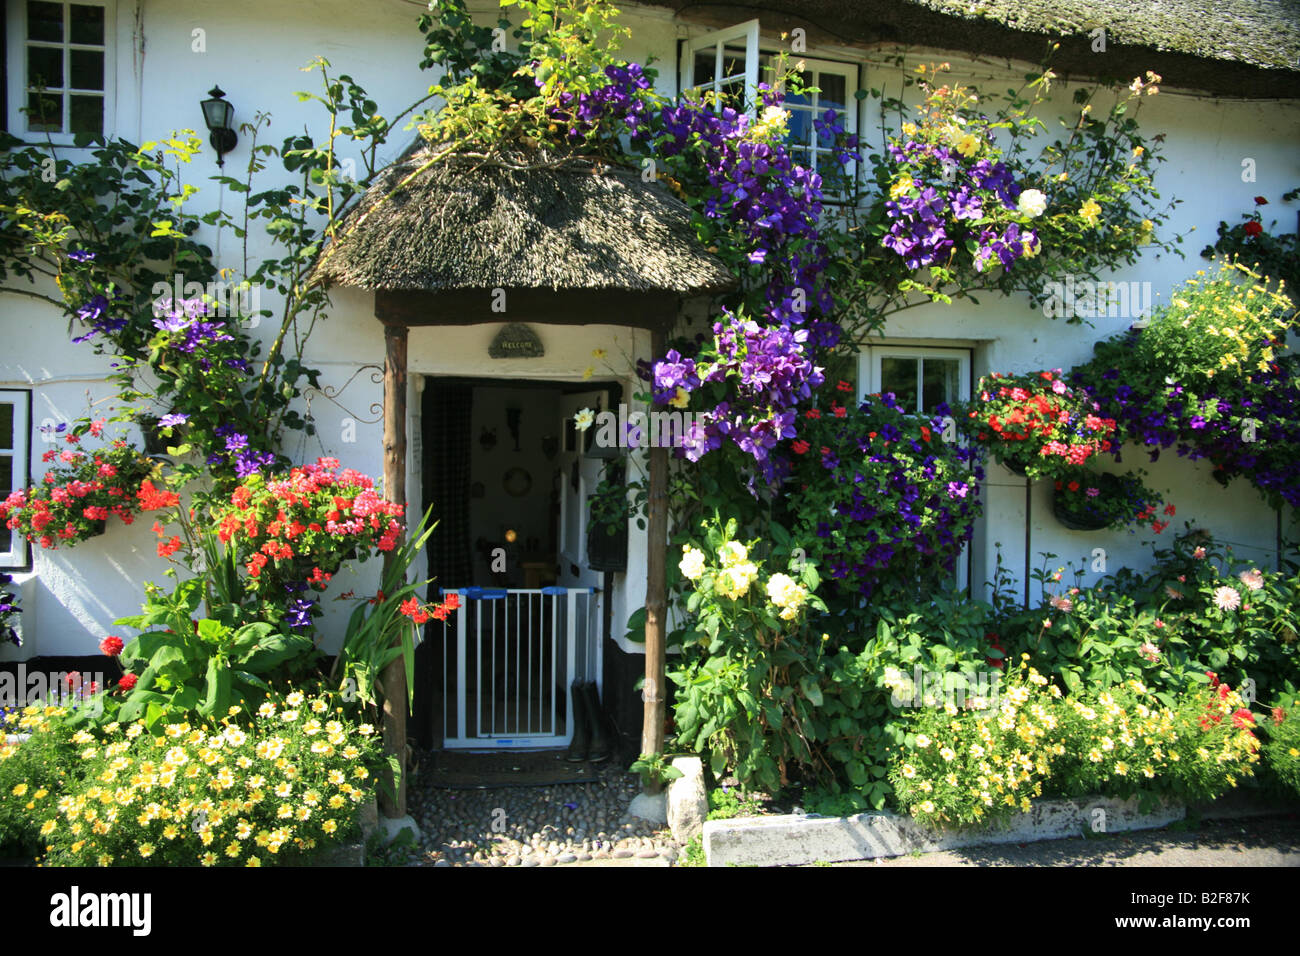 Beautiful White Painted Cob And Thatch Cottages With Summer Flower Display At Branscombe One Of The Longest Villages In Devon